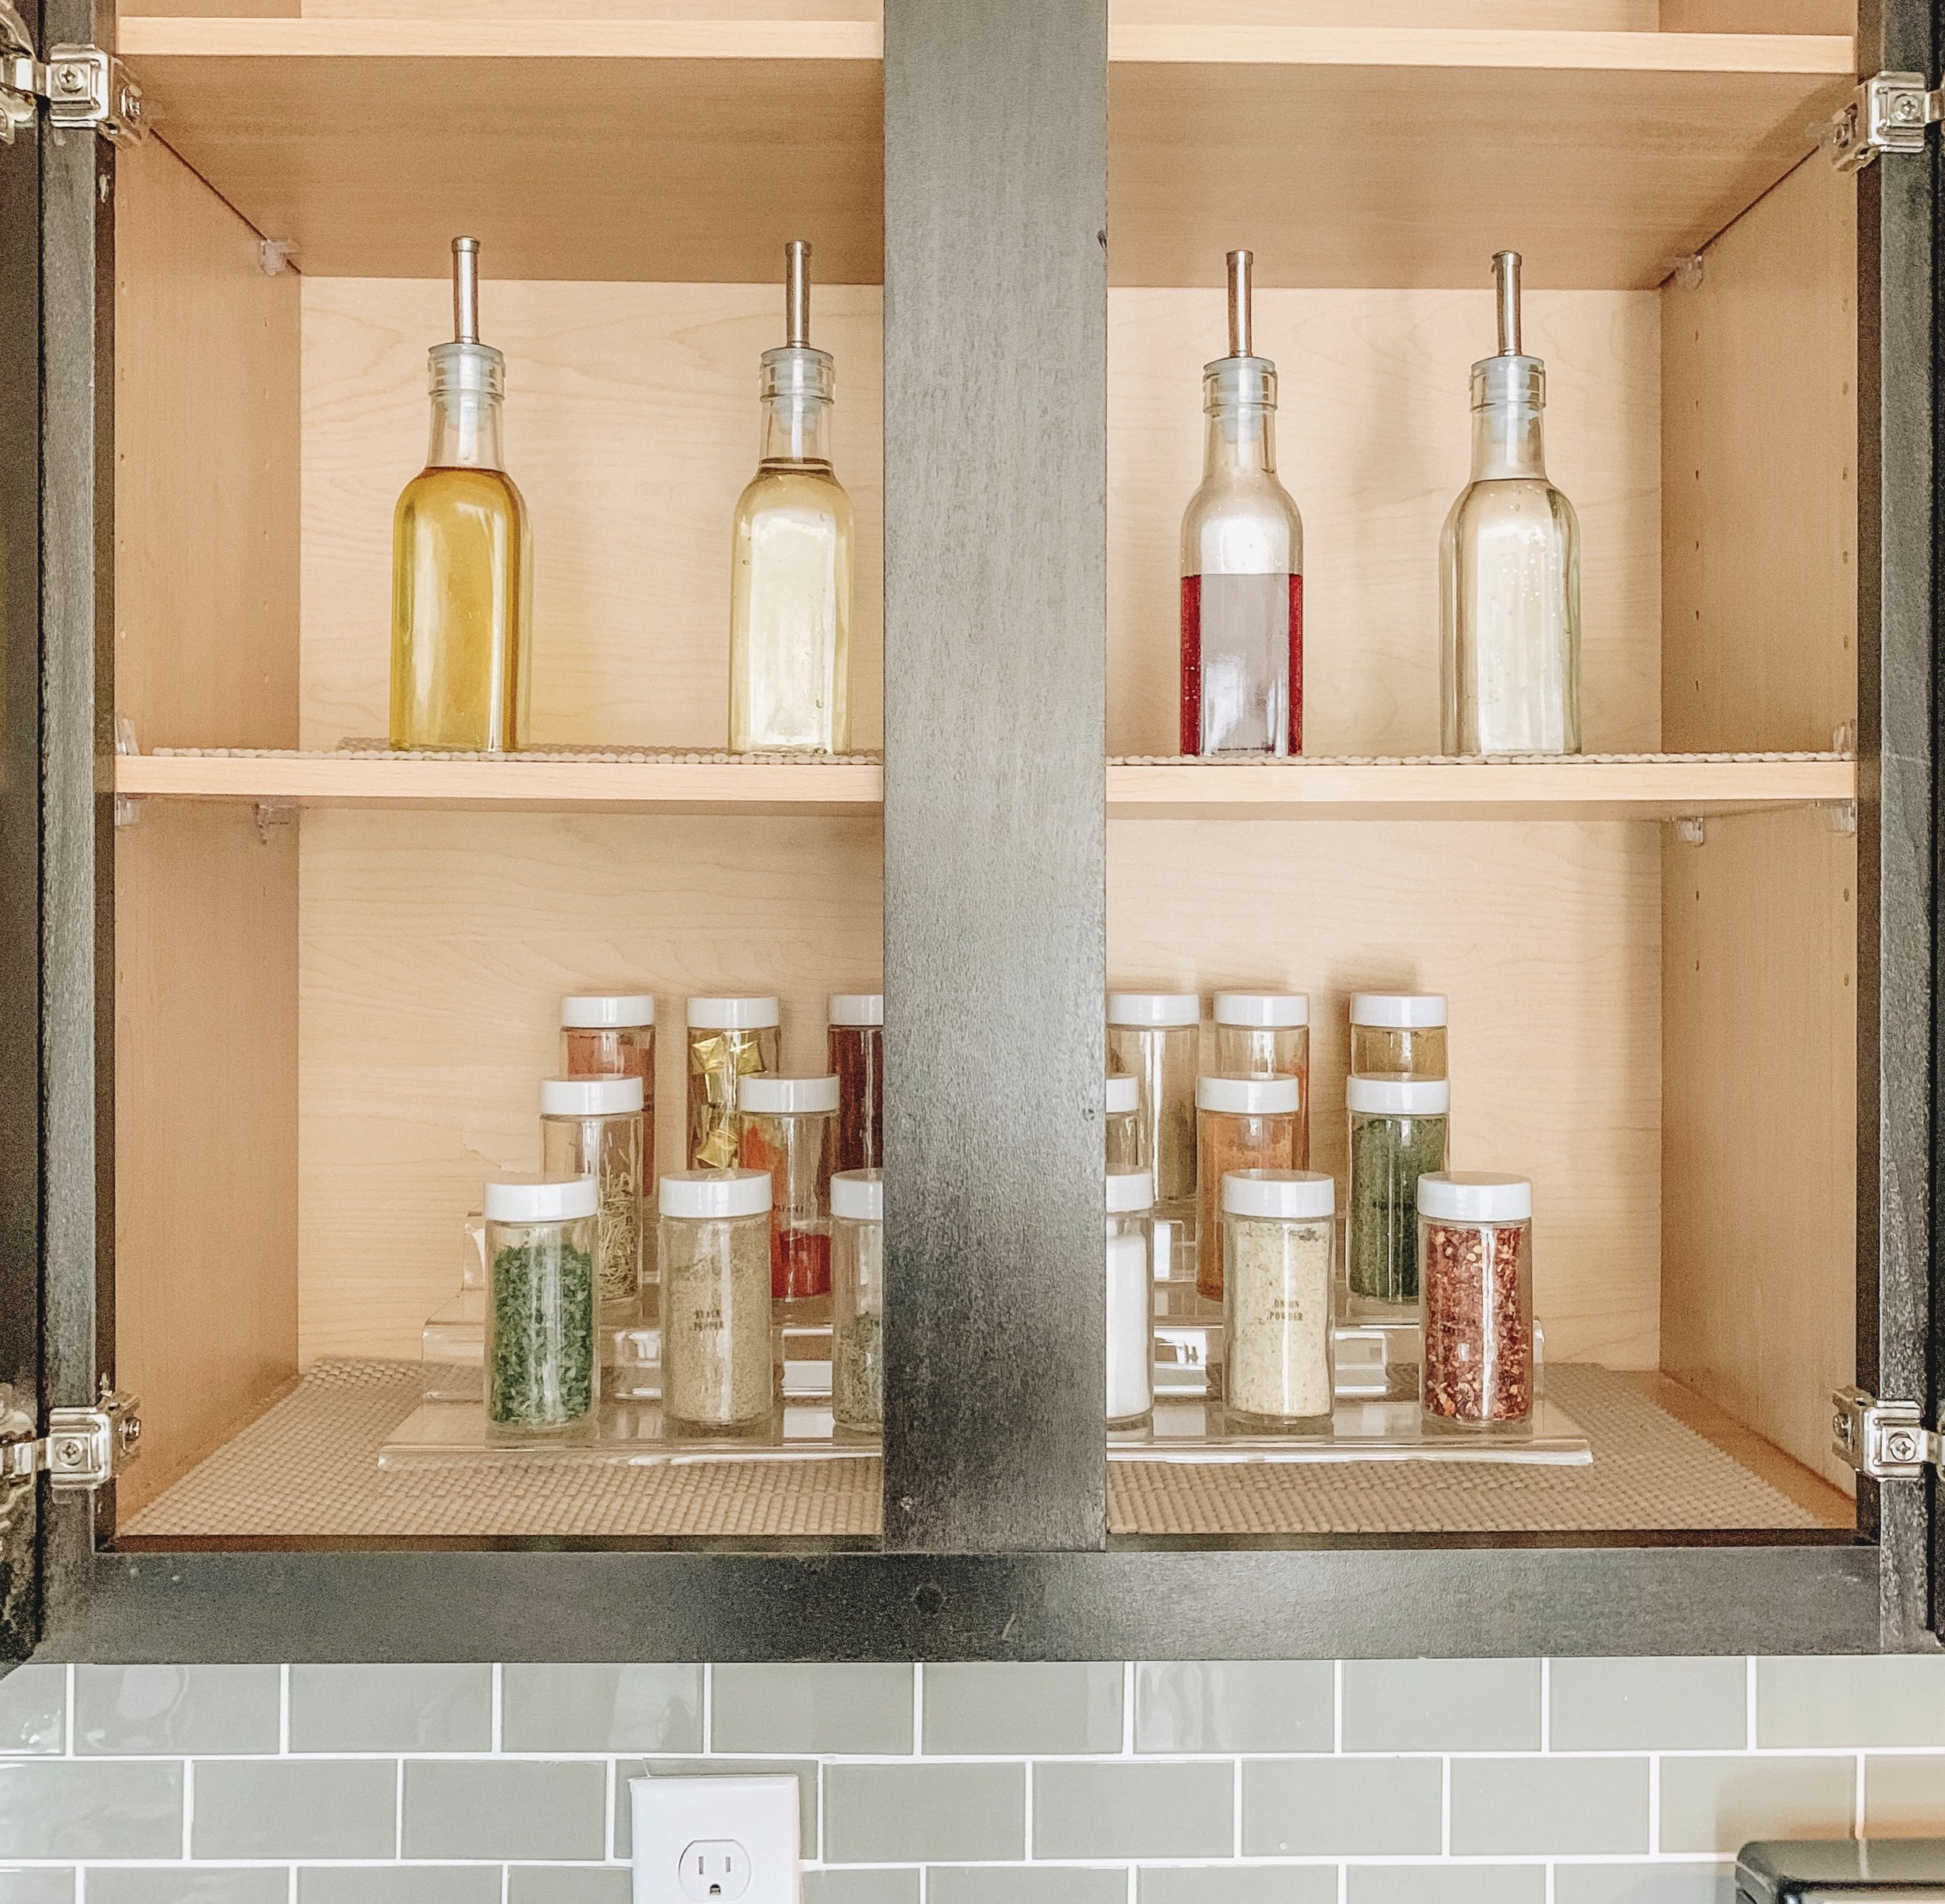 How to Organize Cabinet Space | After